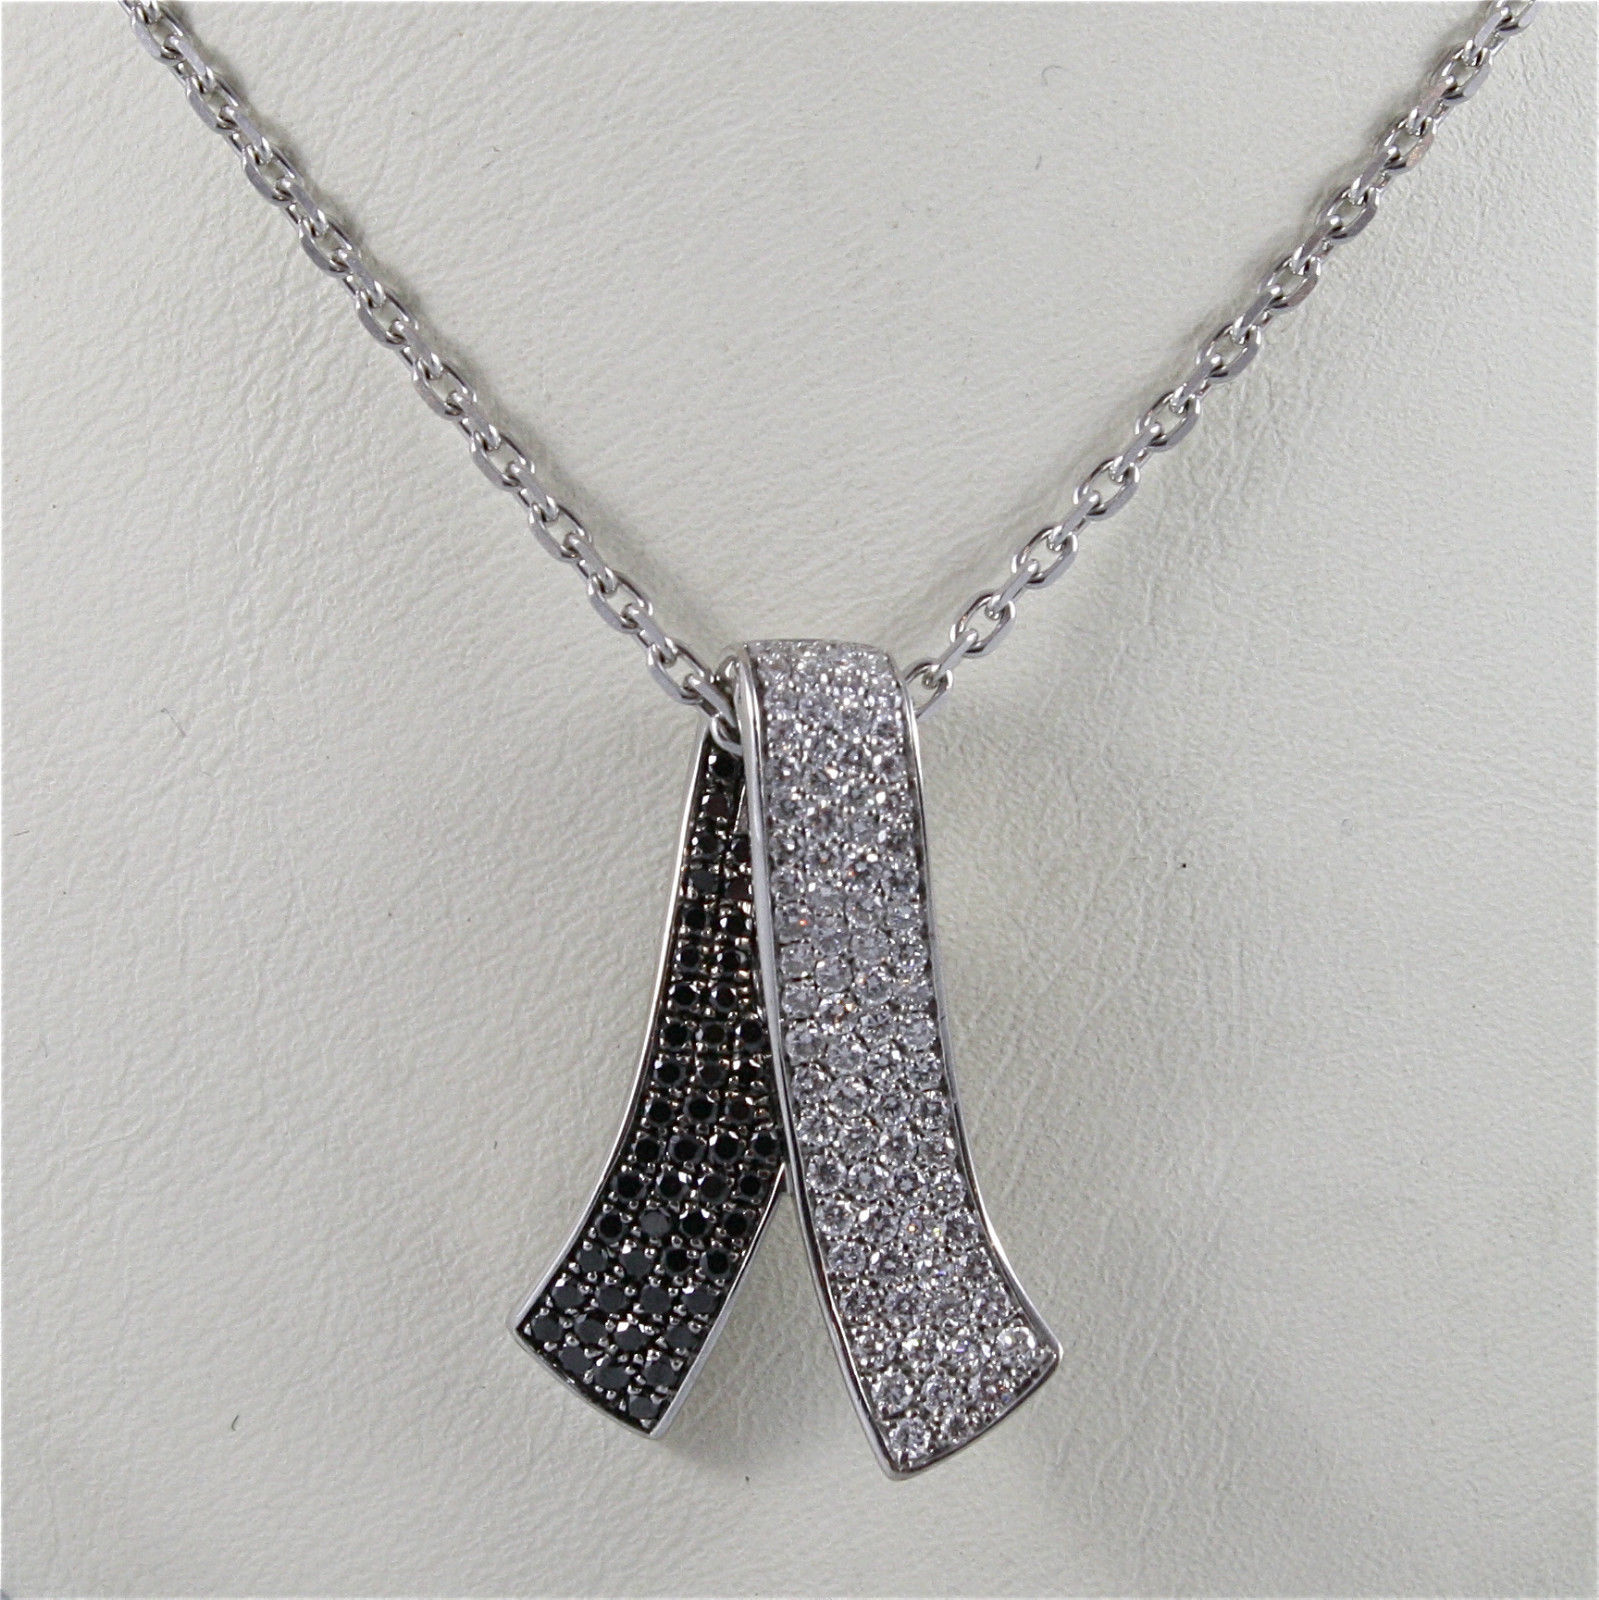 18K WHITE GOLD HUG PENDANT WITH BLACK DIAMONDS CT 2.07, NECKLACE, MADE IN ITALY